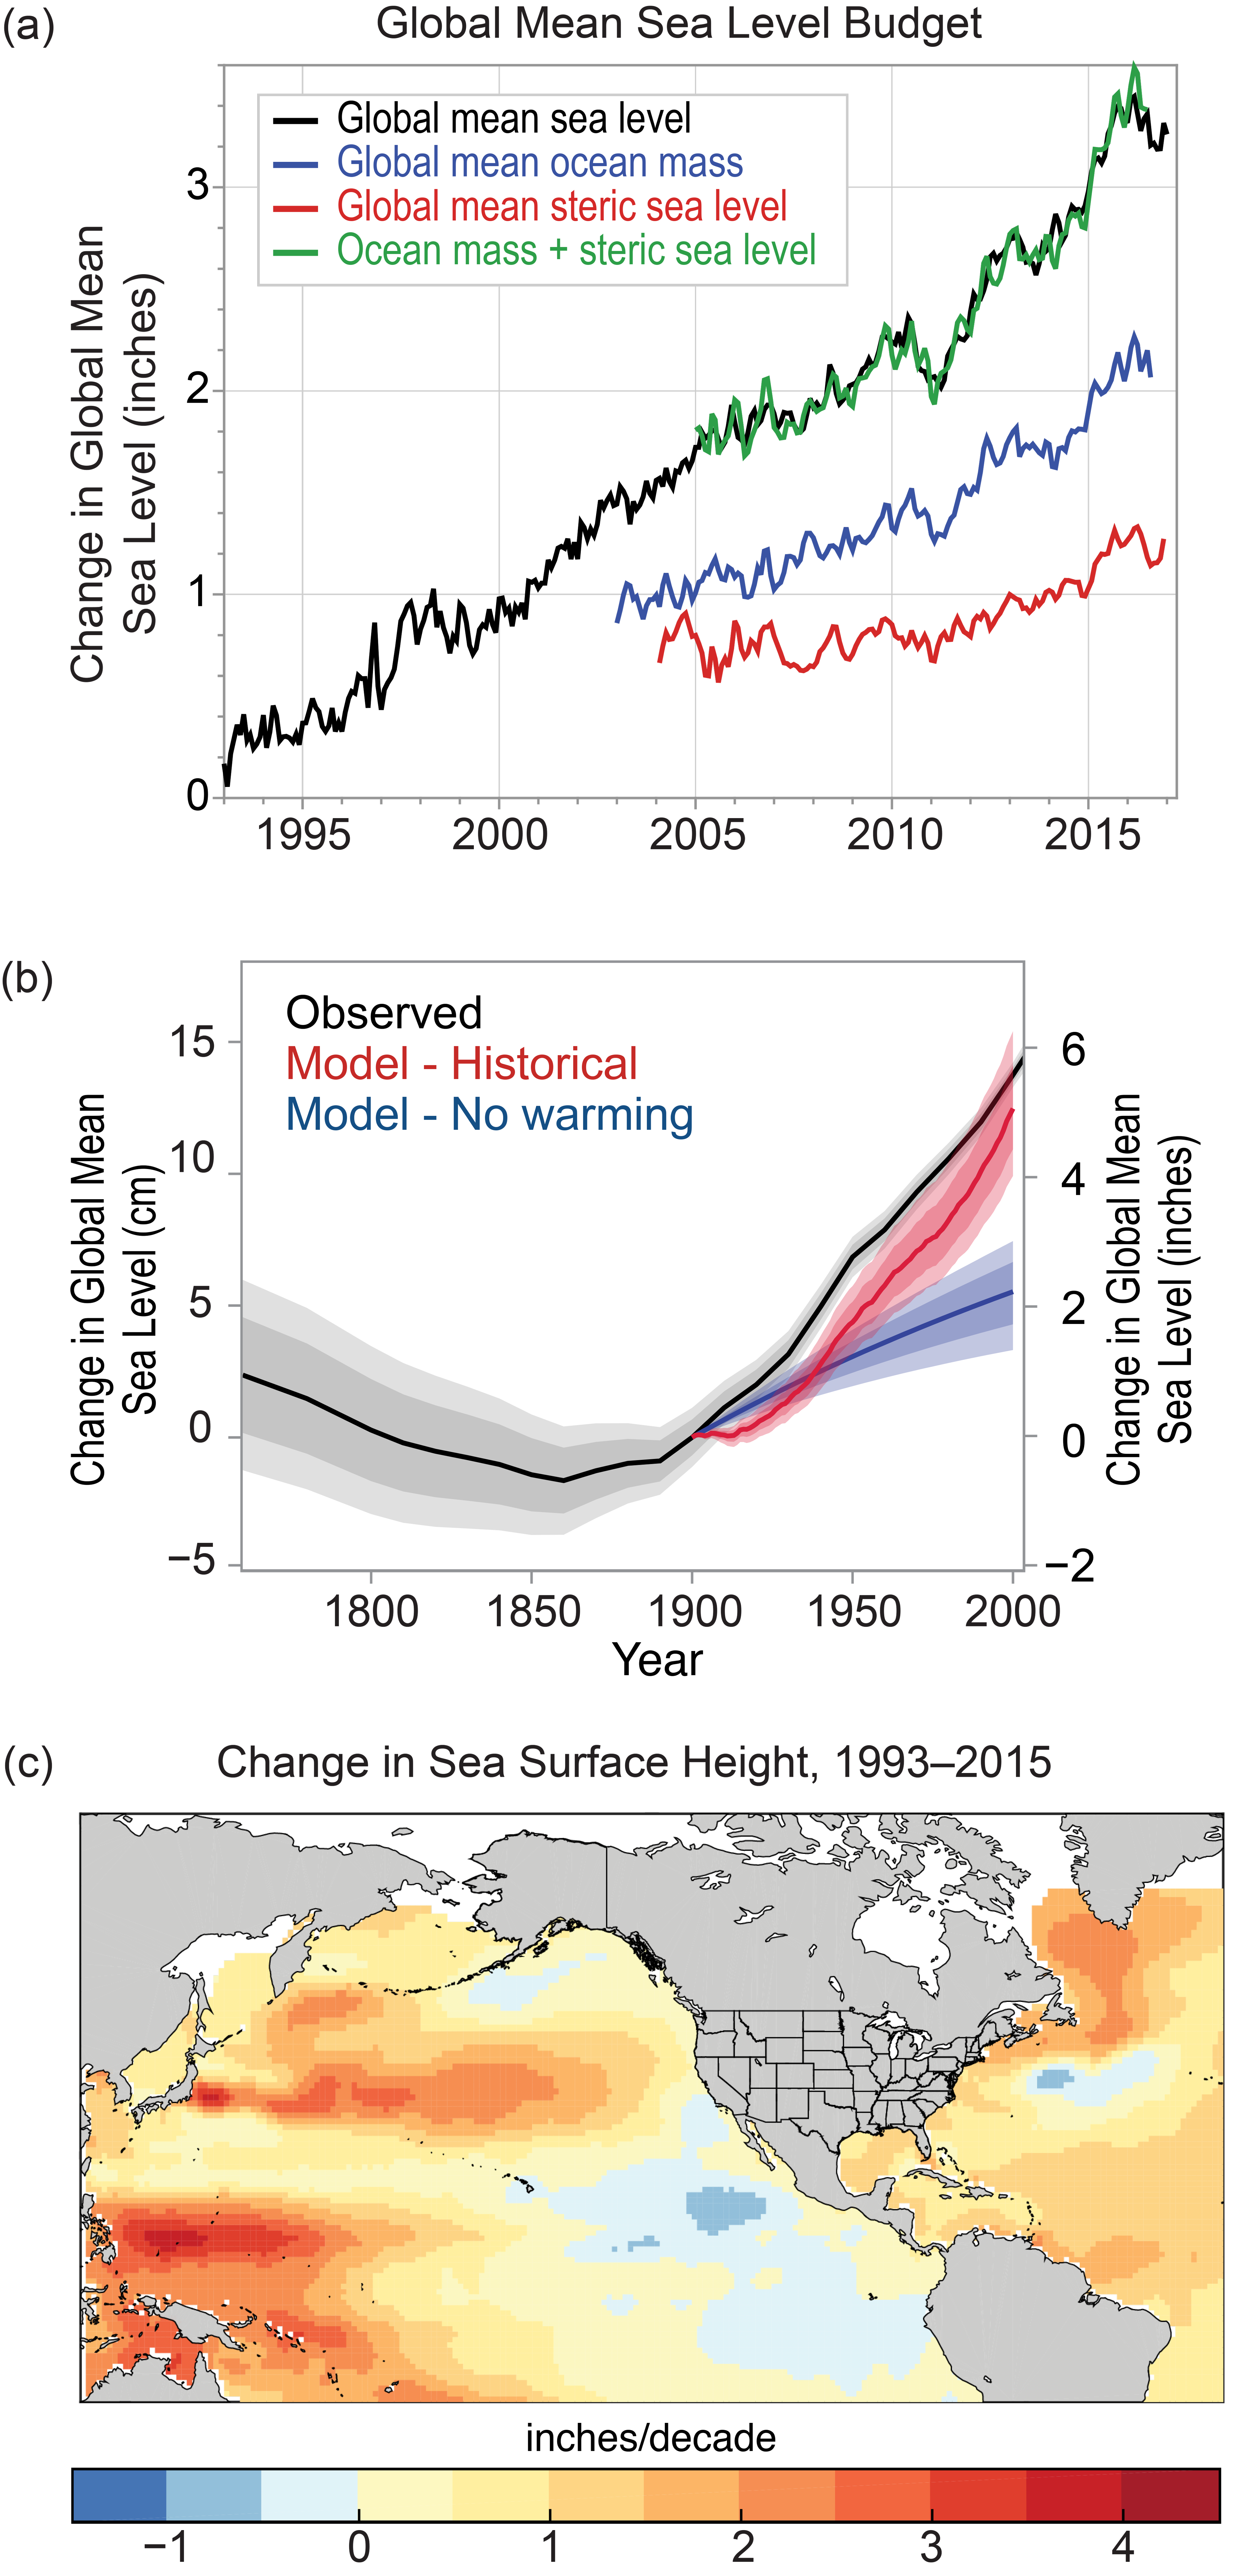 Sea level rise climate science special report a contributions of ocean mass changes from land ice and land water storage measured by satellite gravimetry and ocean volume changes or steric nvjuhfo Choice Image